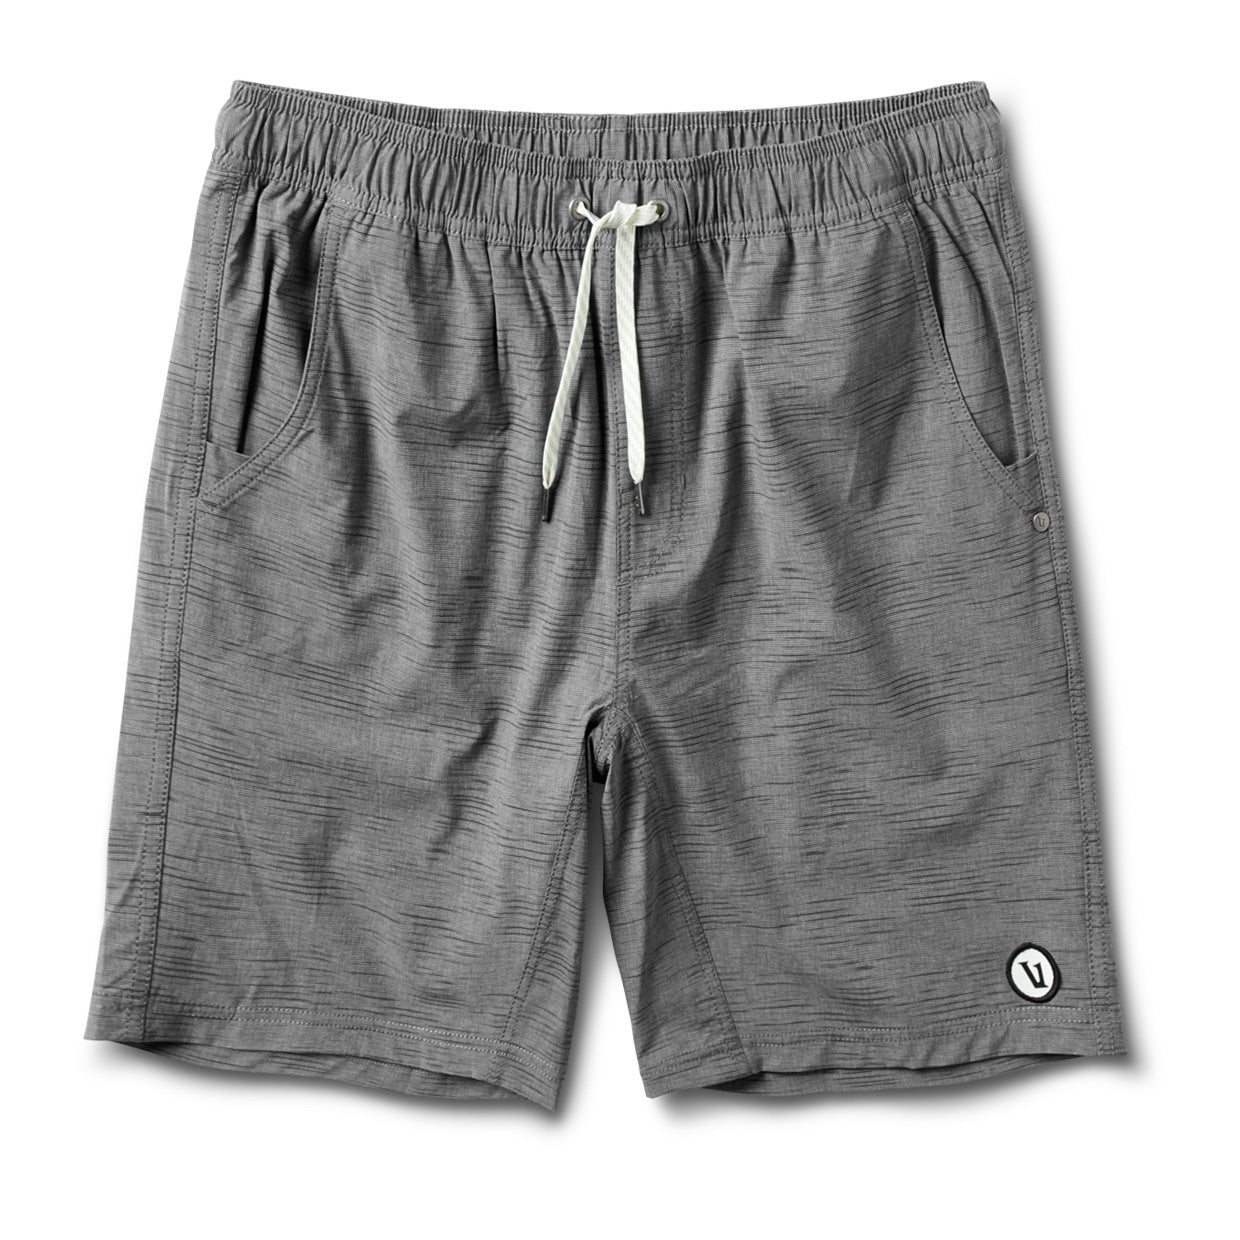 Kore Short | Charcoal Space Dye